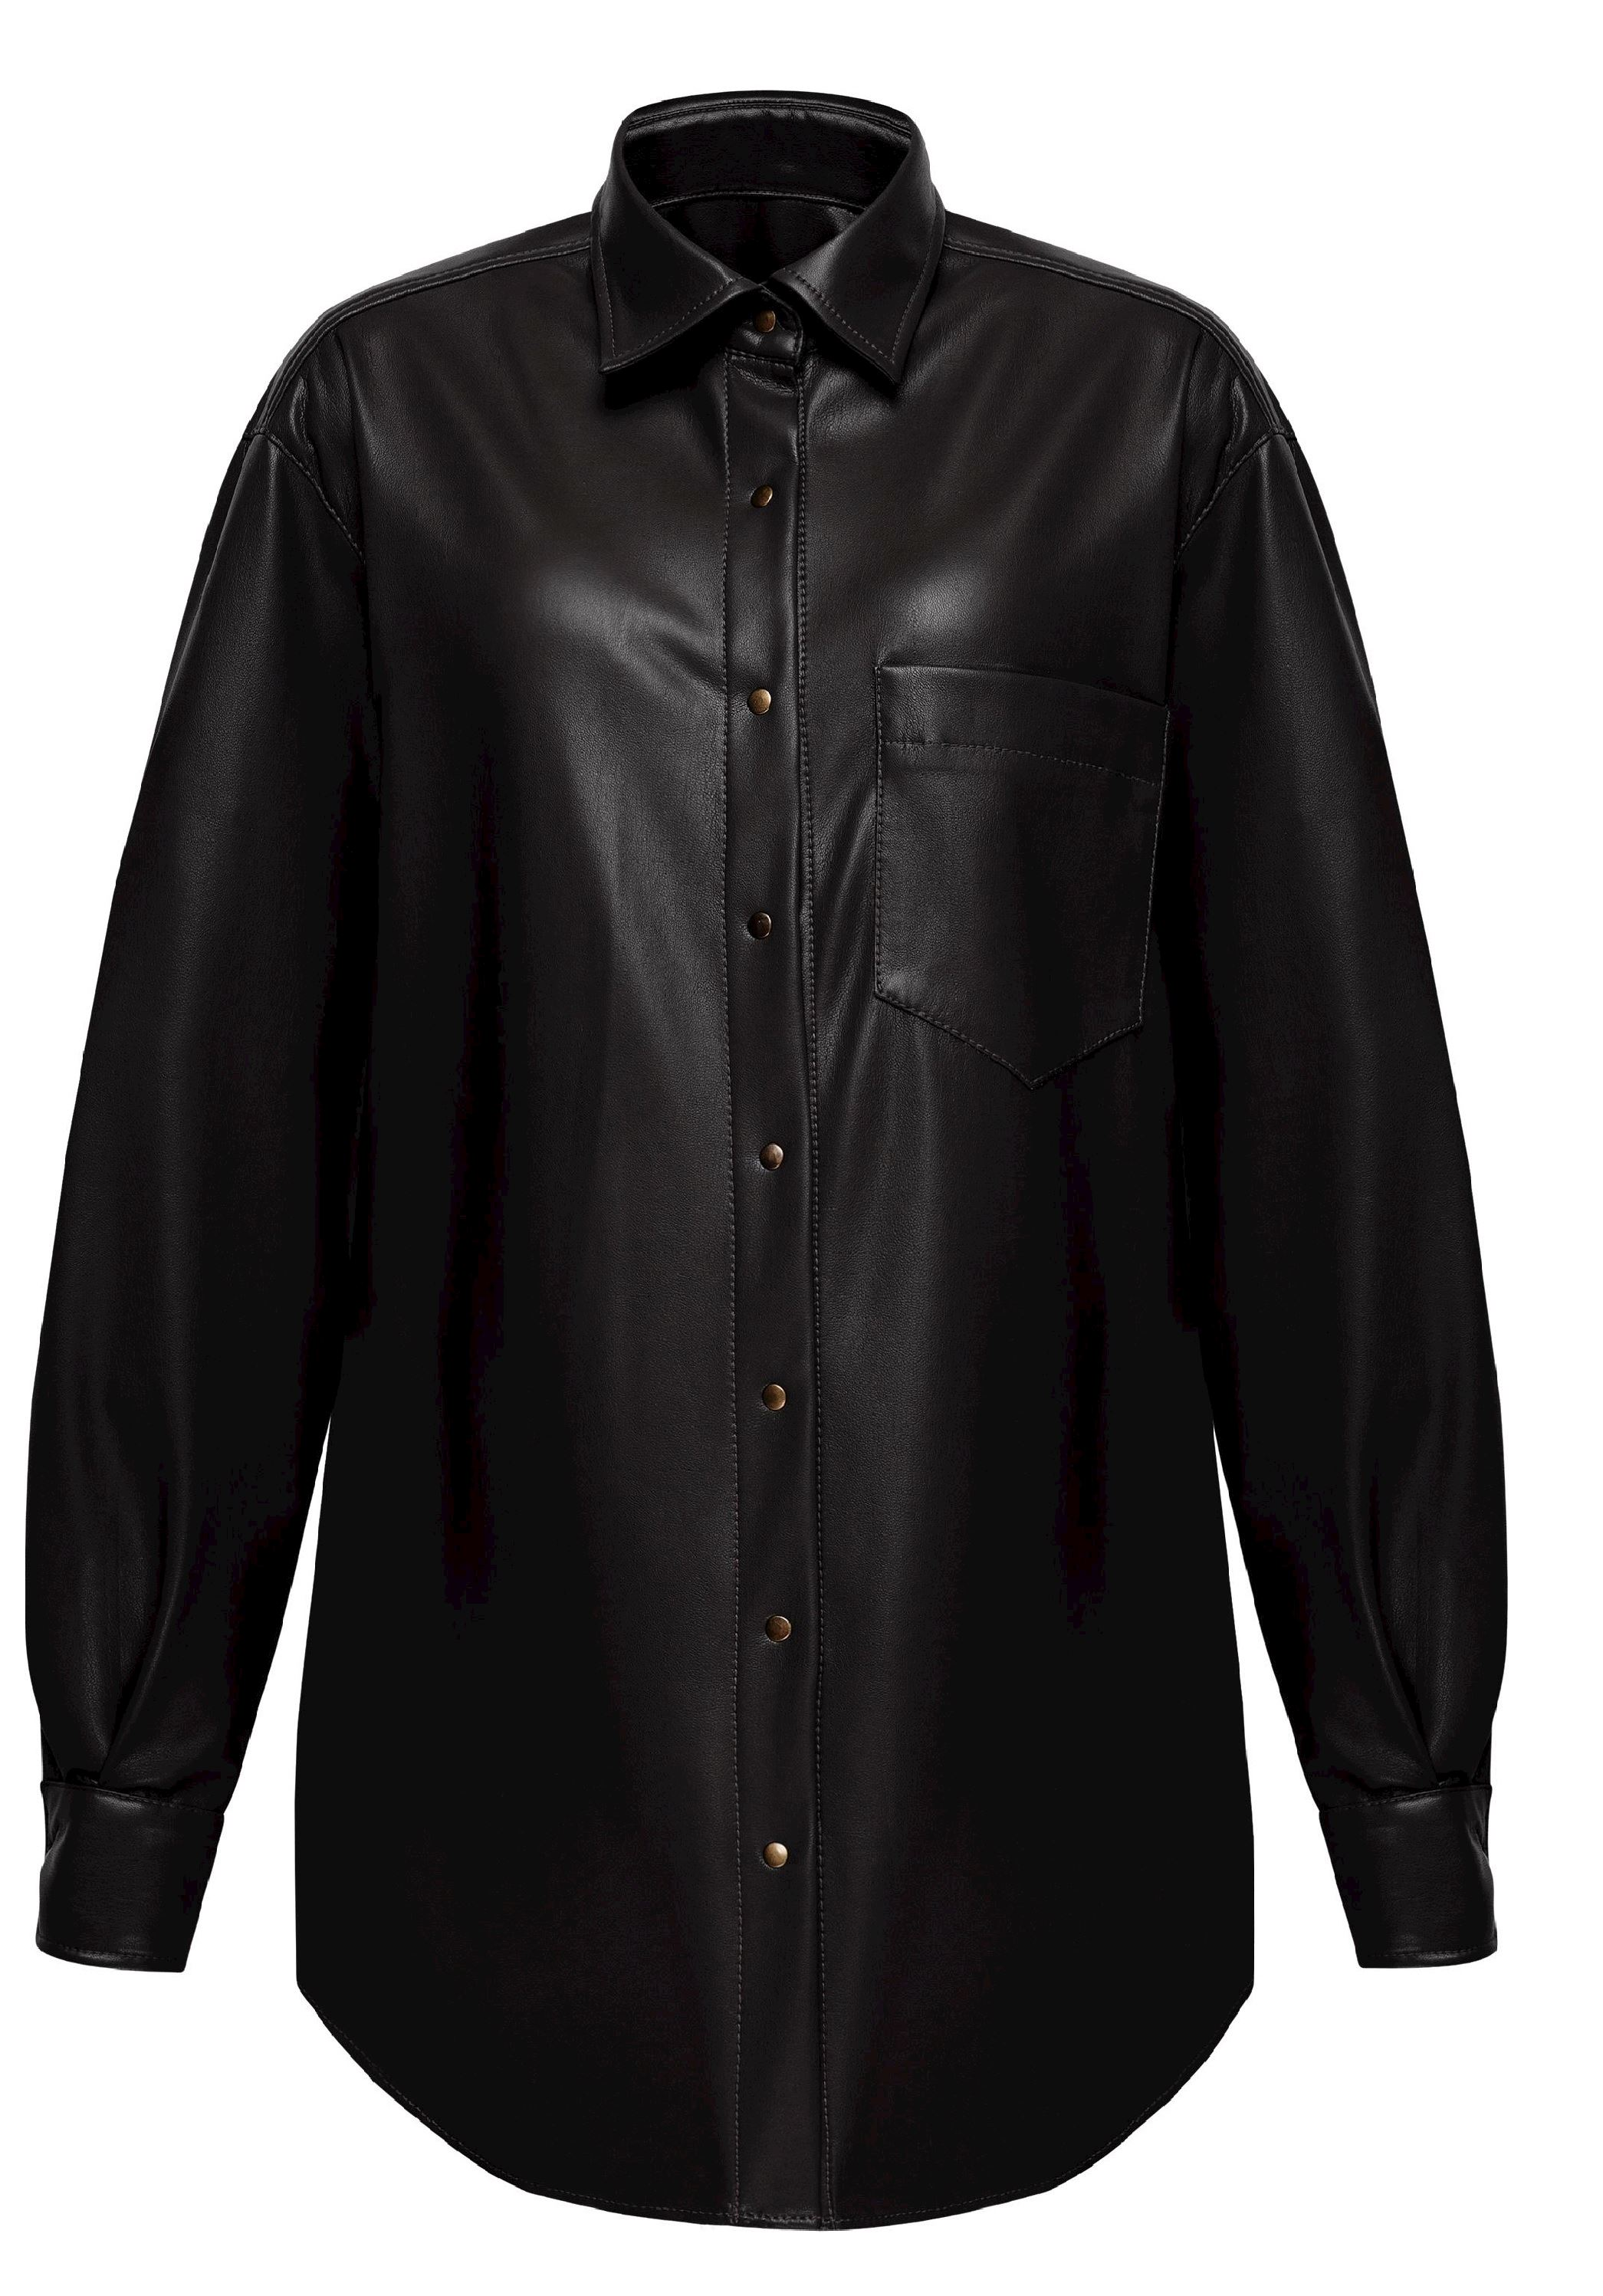 Black maternity shirt made of eco-leather